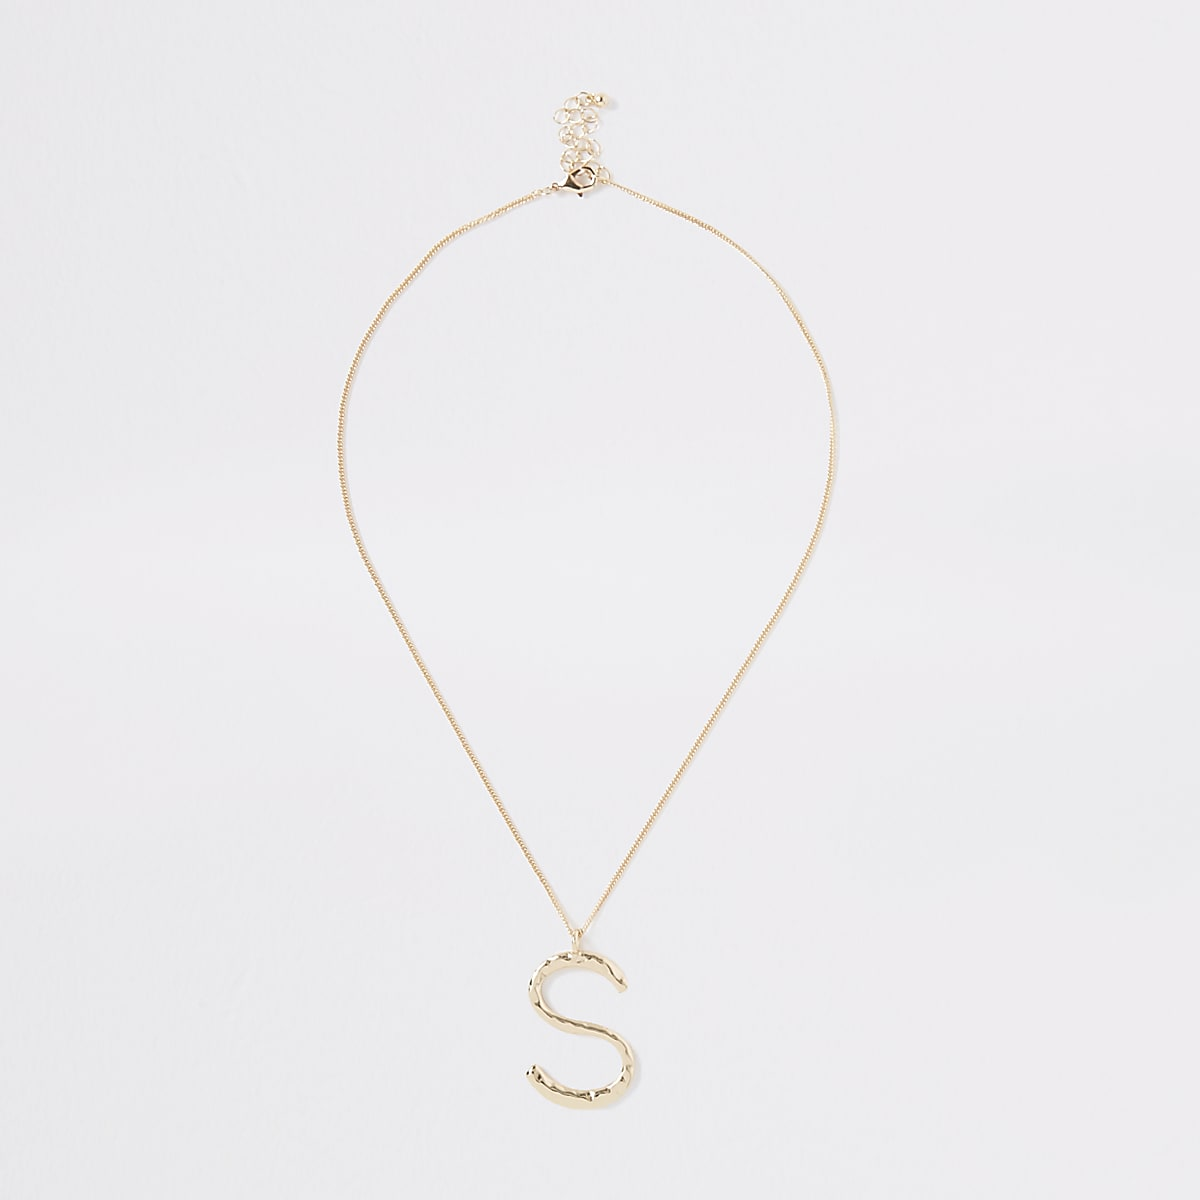 Gold color large initial 'S' necklace